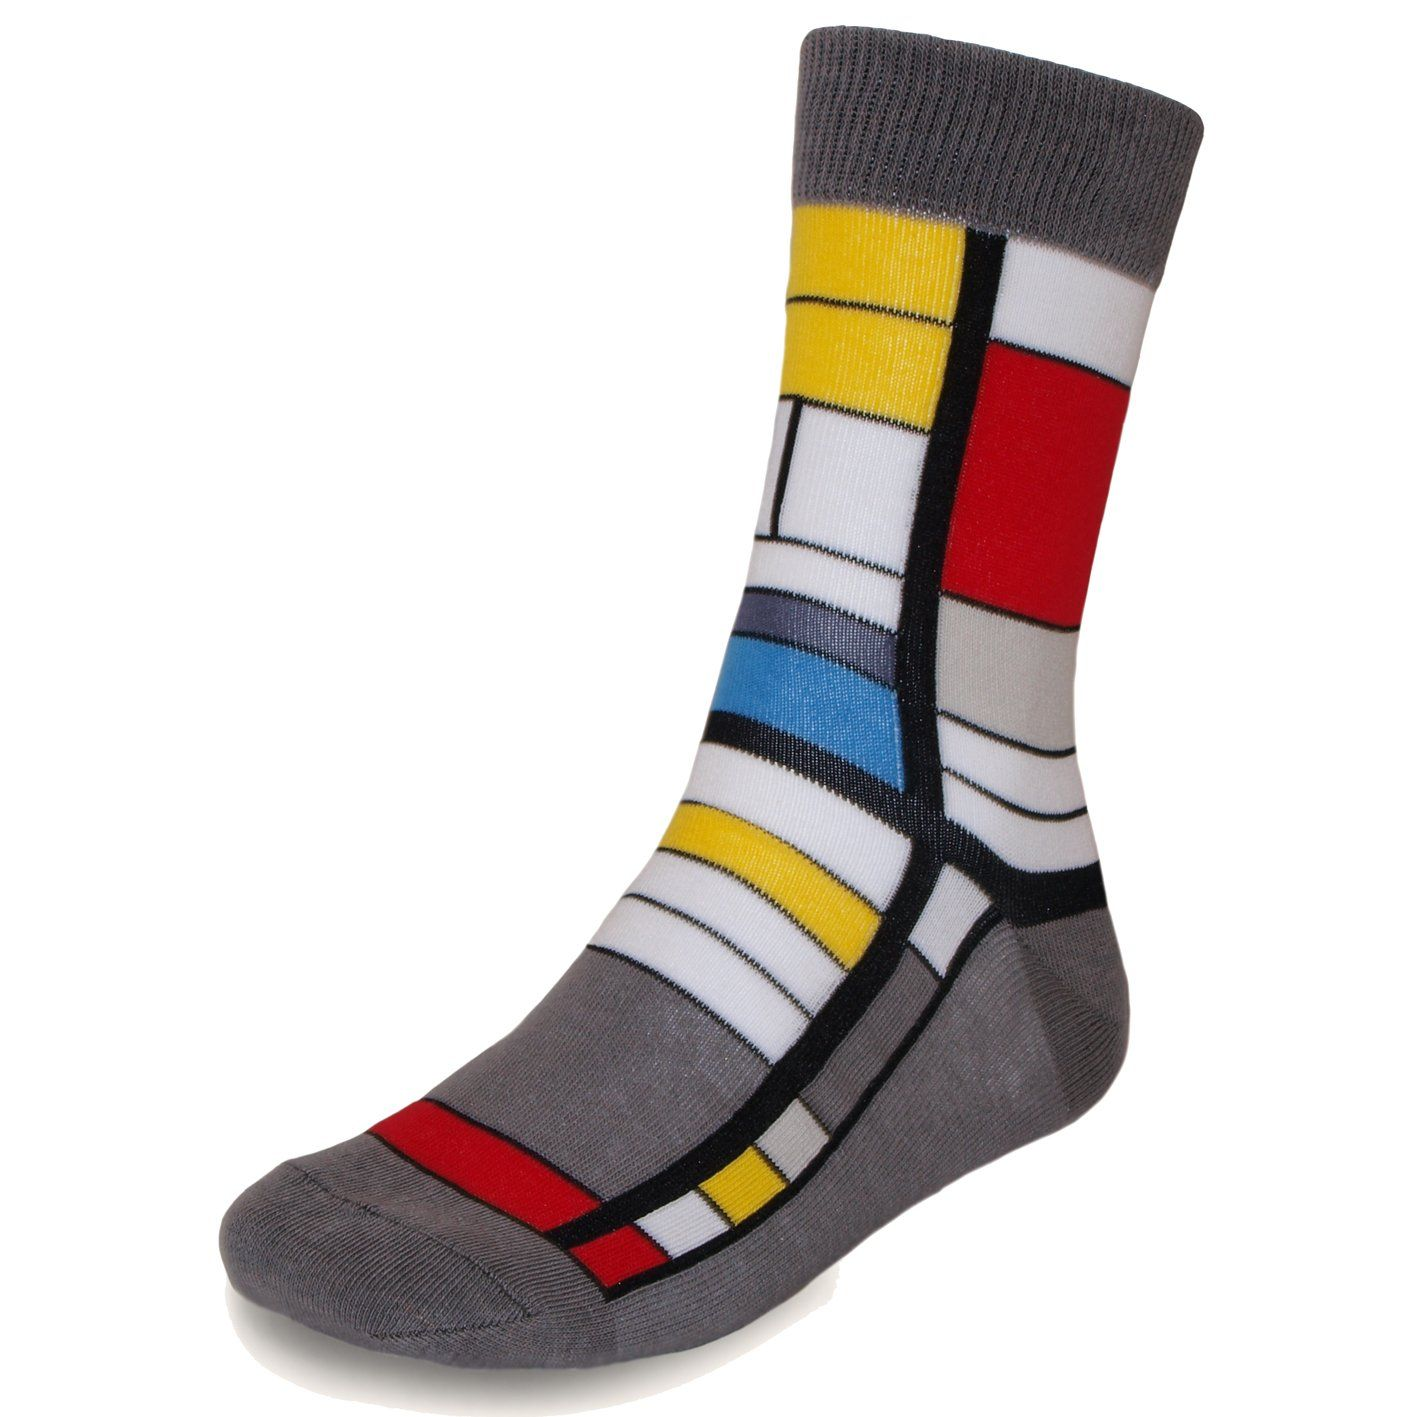 Good Prices variety of designs and colors 2019 hot sale Men's Piero Liventi Cotton Mondrian Dress Socks PL333-1 at ...